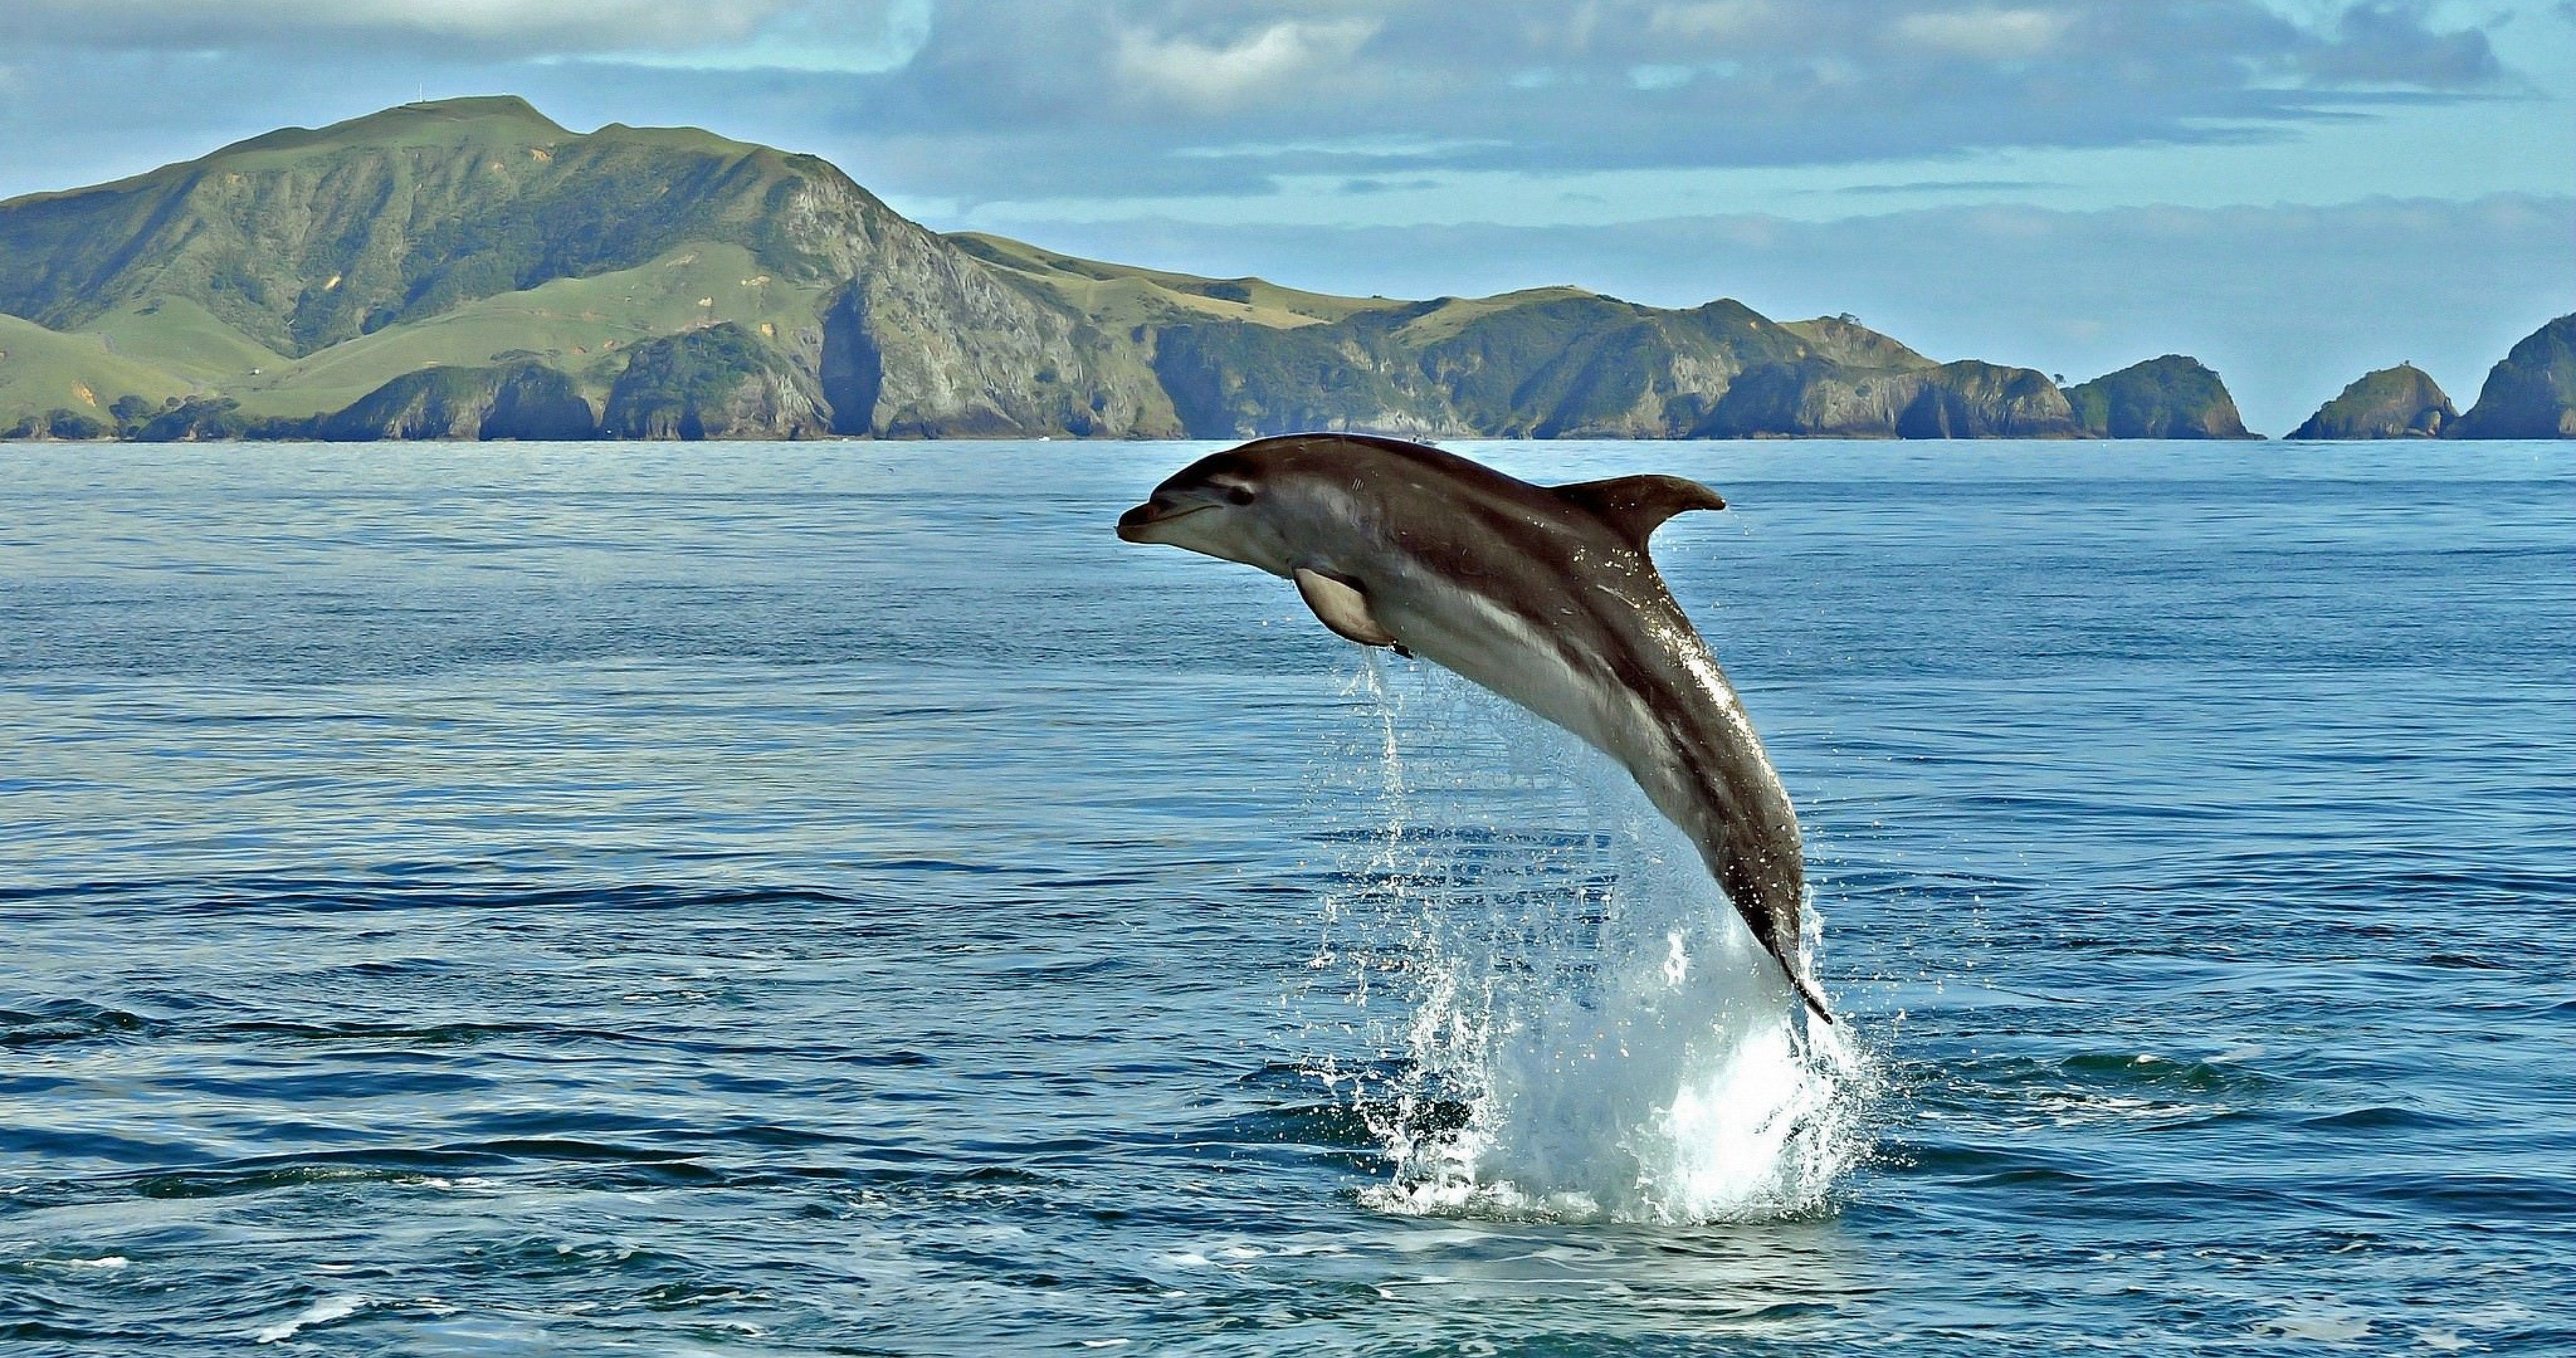 dolphin in sea 4k ultra hd wallpaper Dolphins, Animals